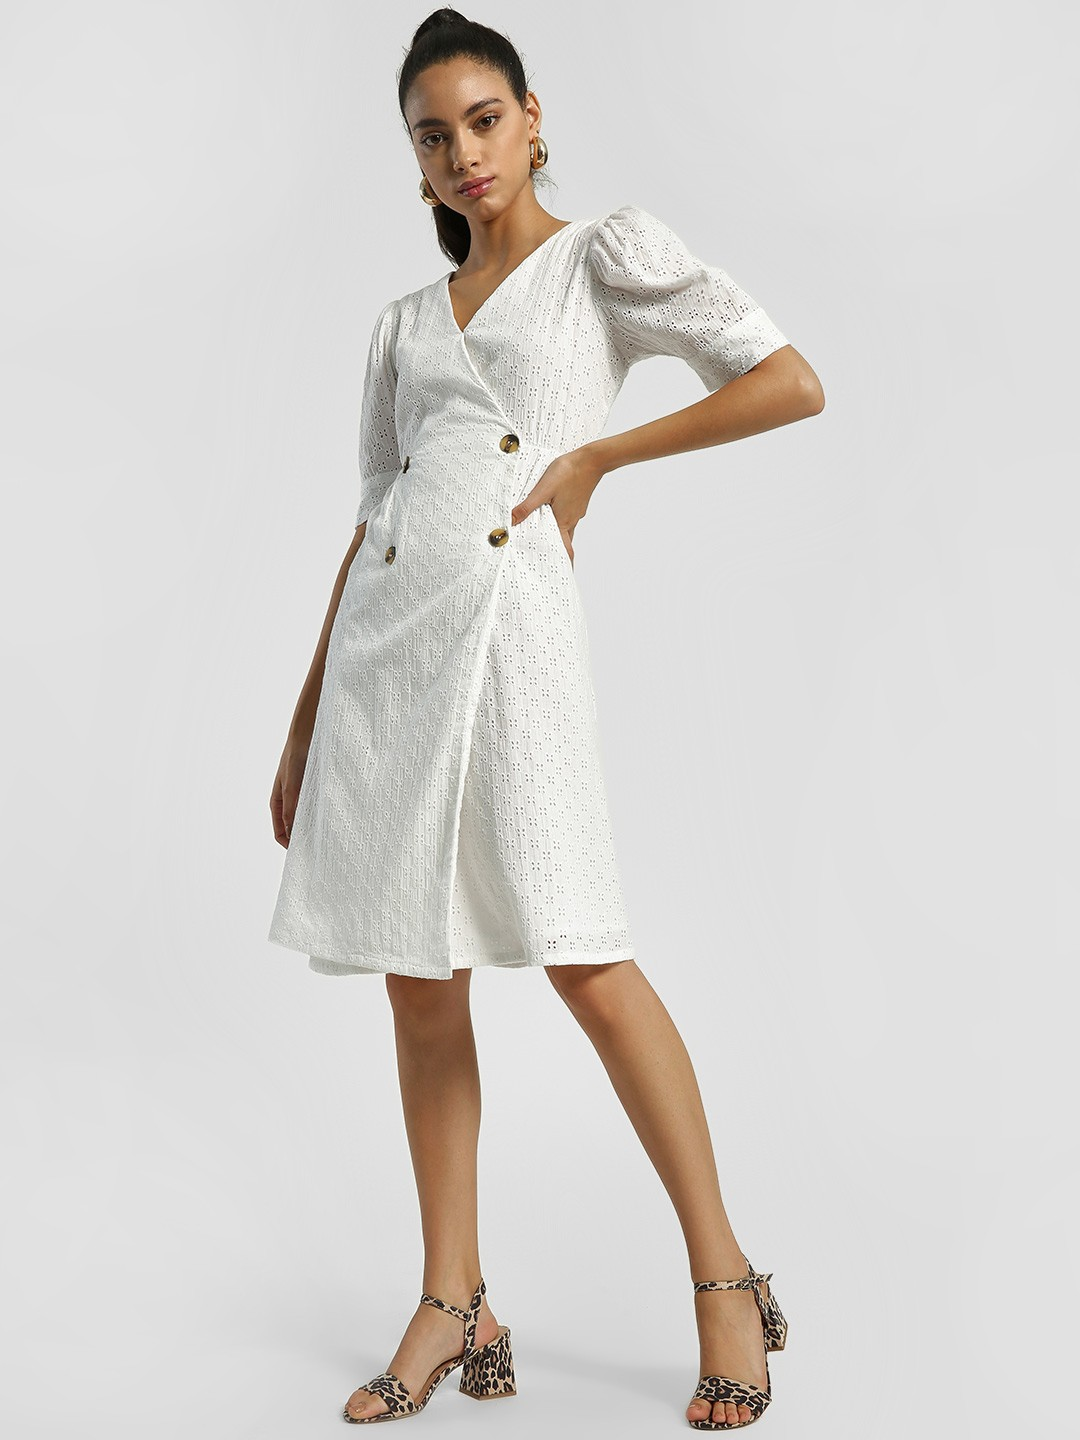 Rena Love White Broderie Wrap Midi Dress 1